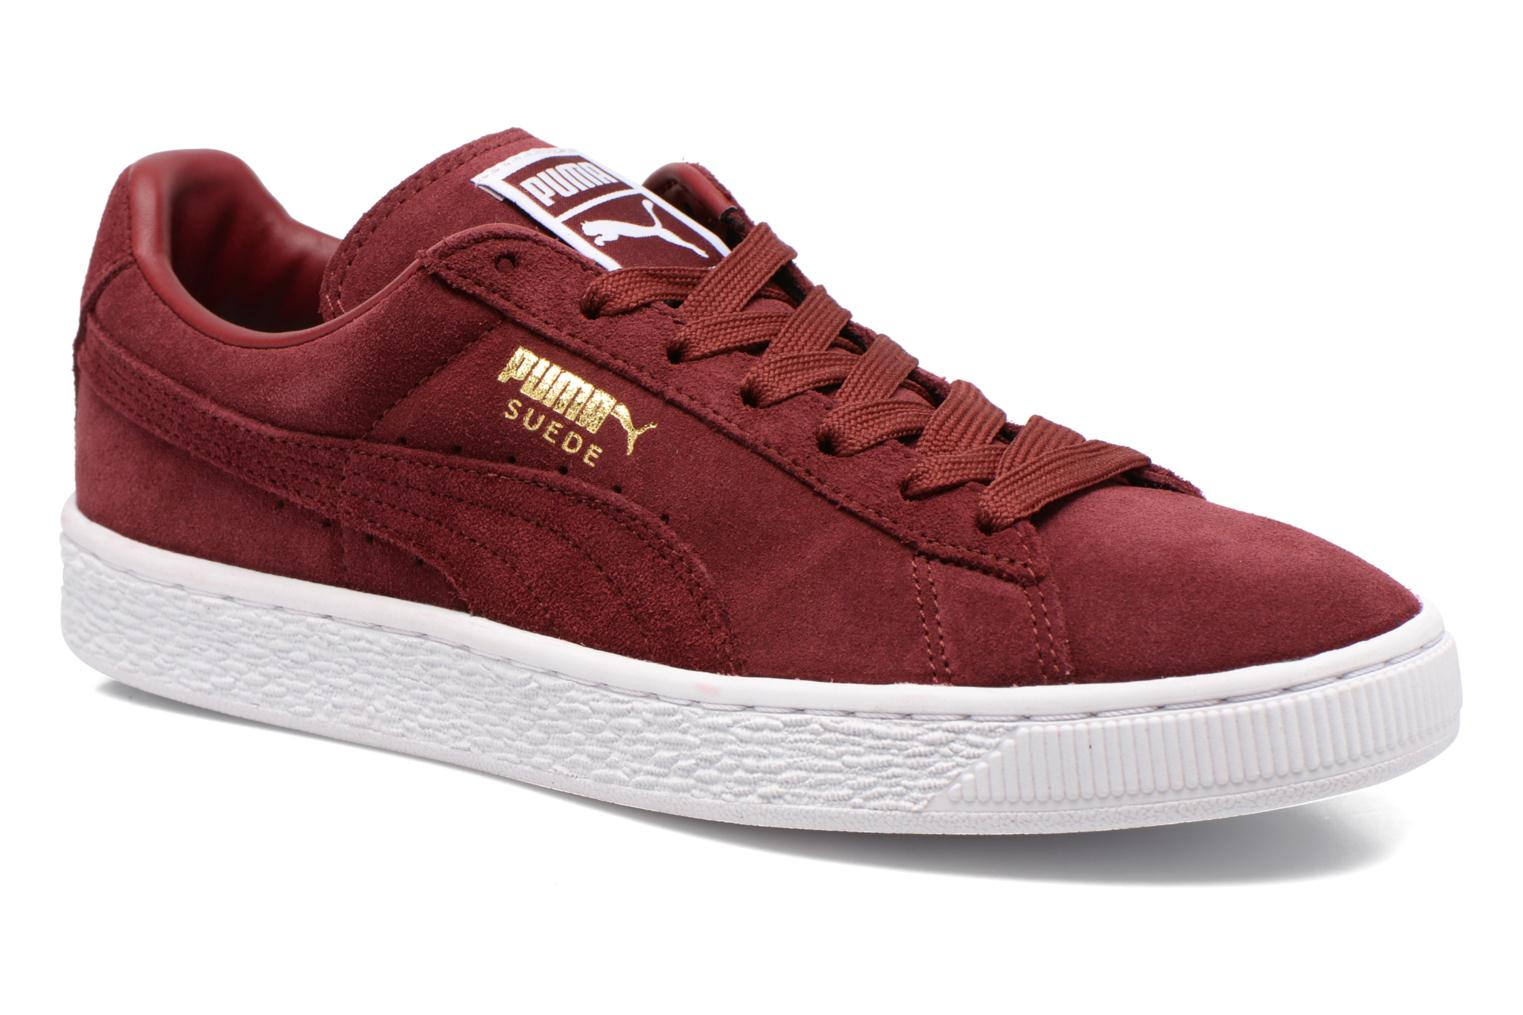 Sneakers Suede Classic+ by Puma